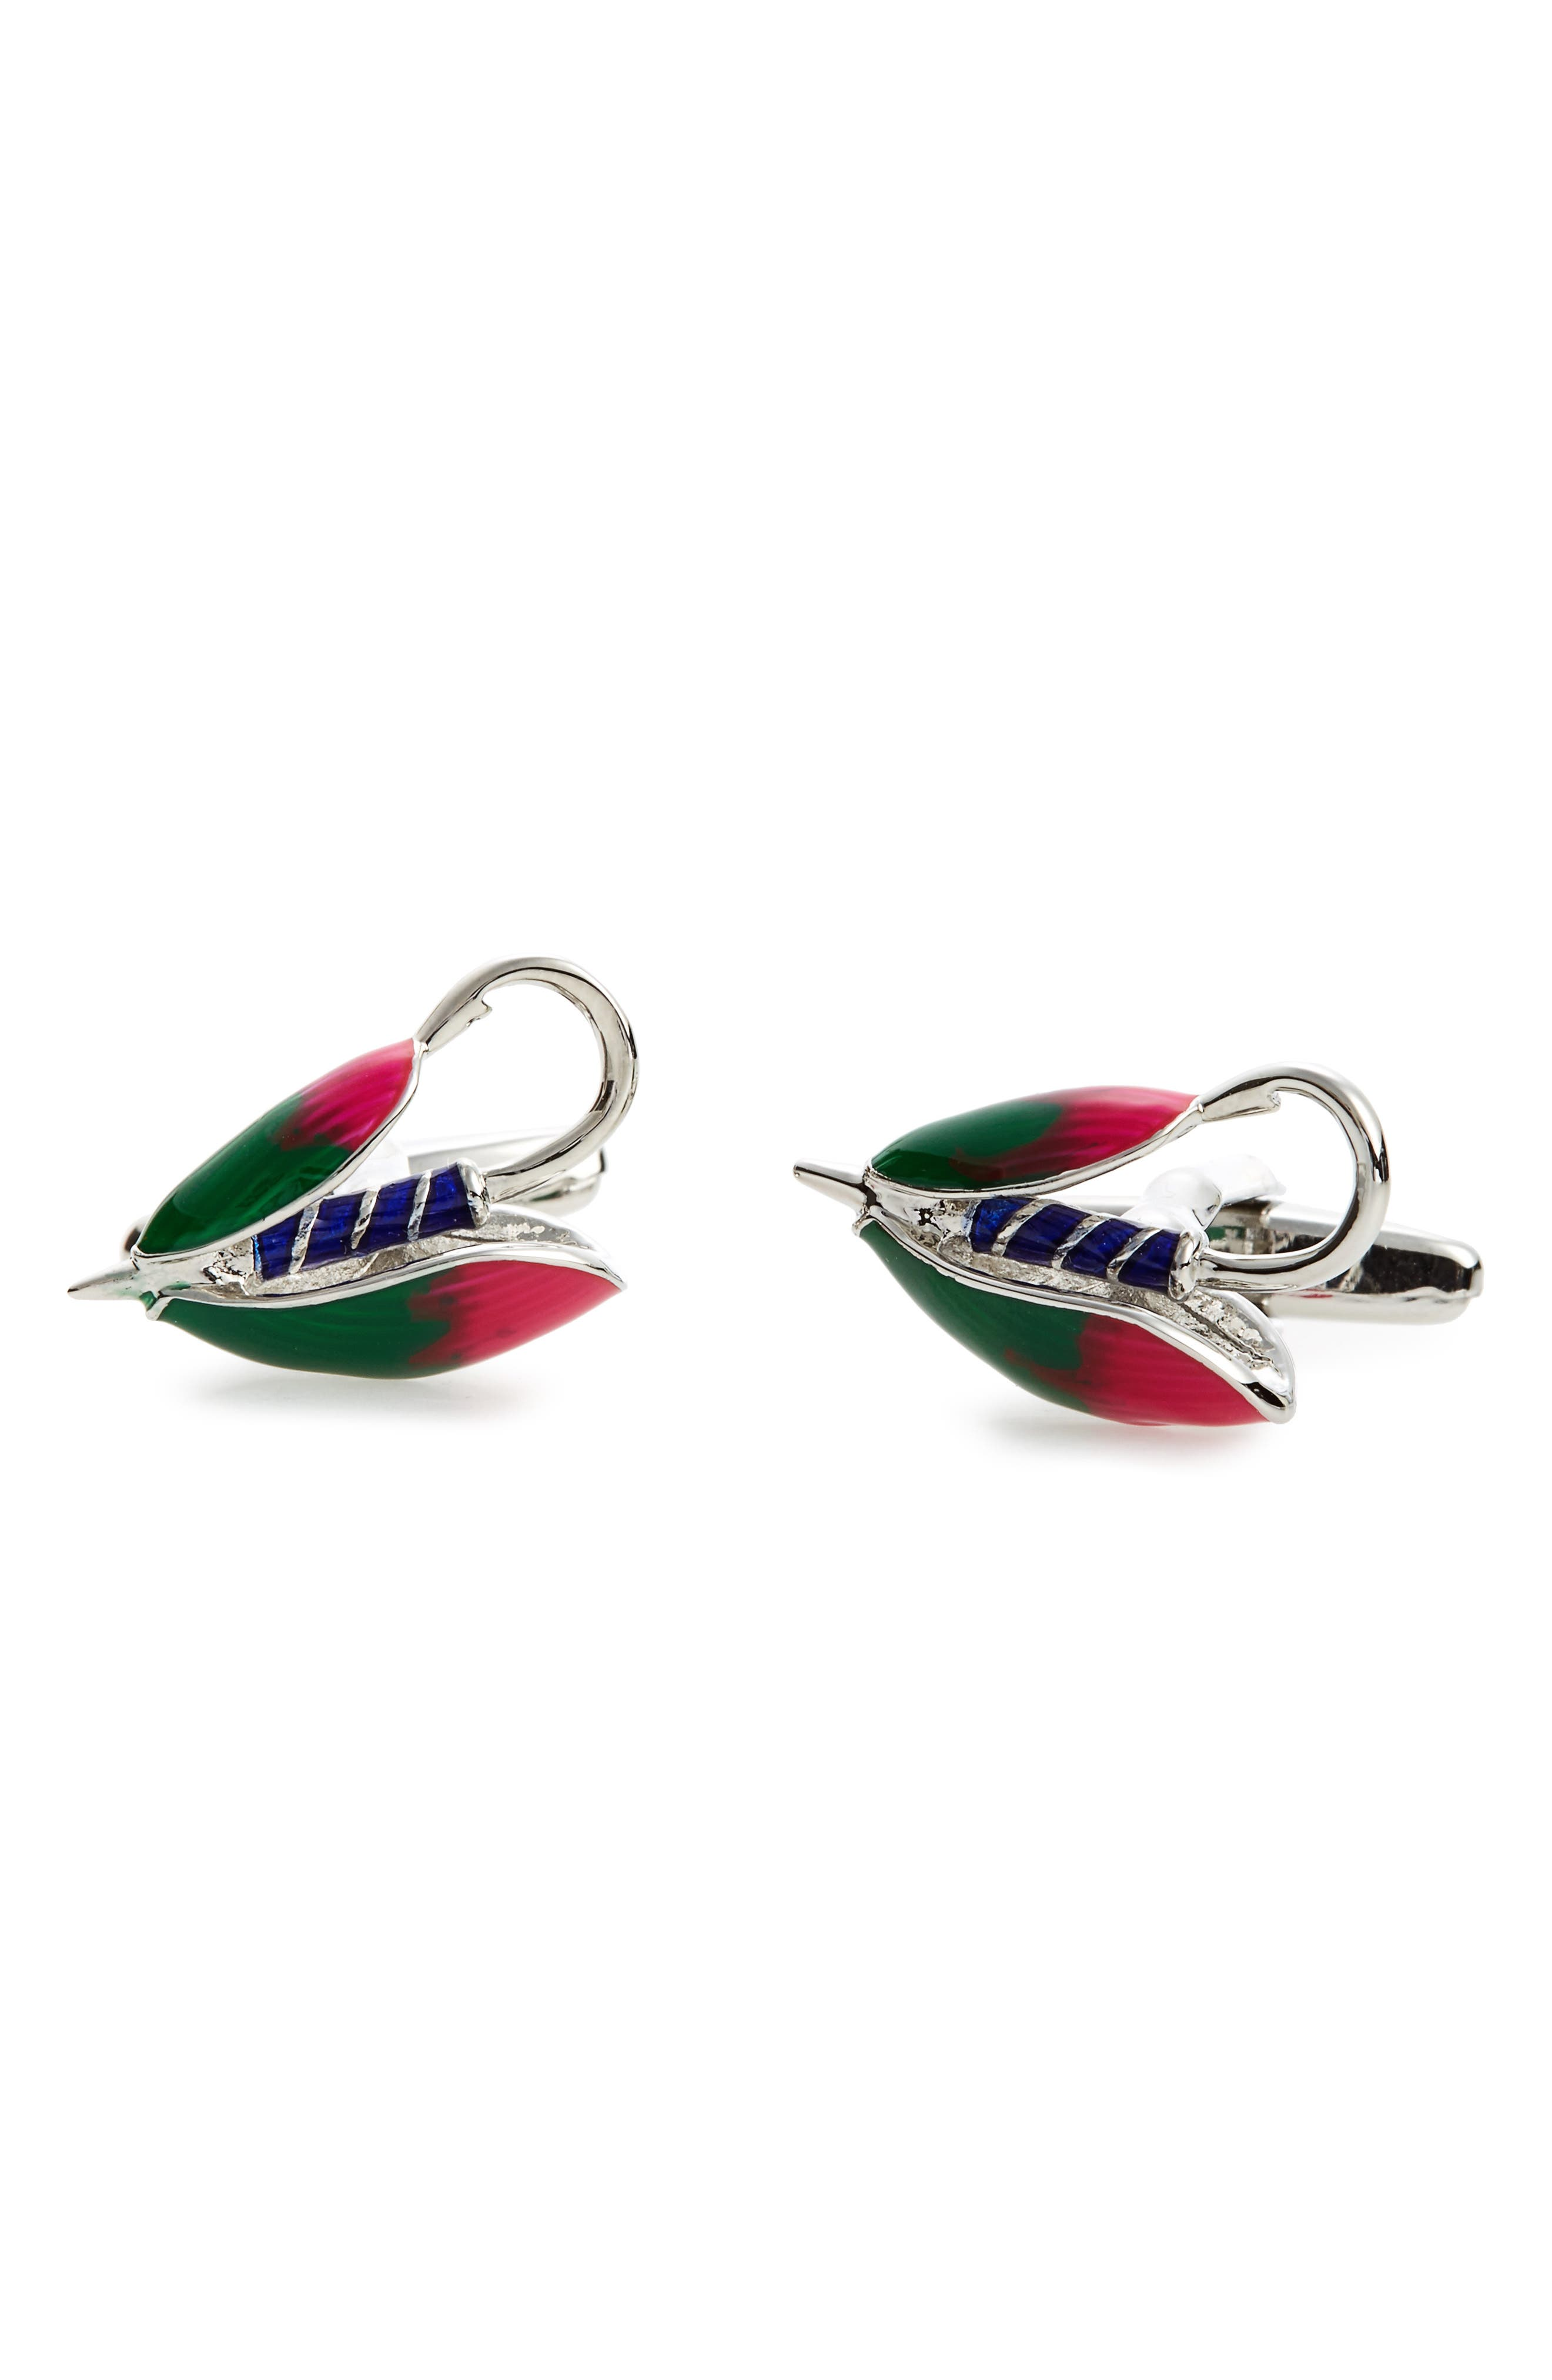 Alternate Image 1 Selected - Link Up Flyfishing Cuff Links